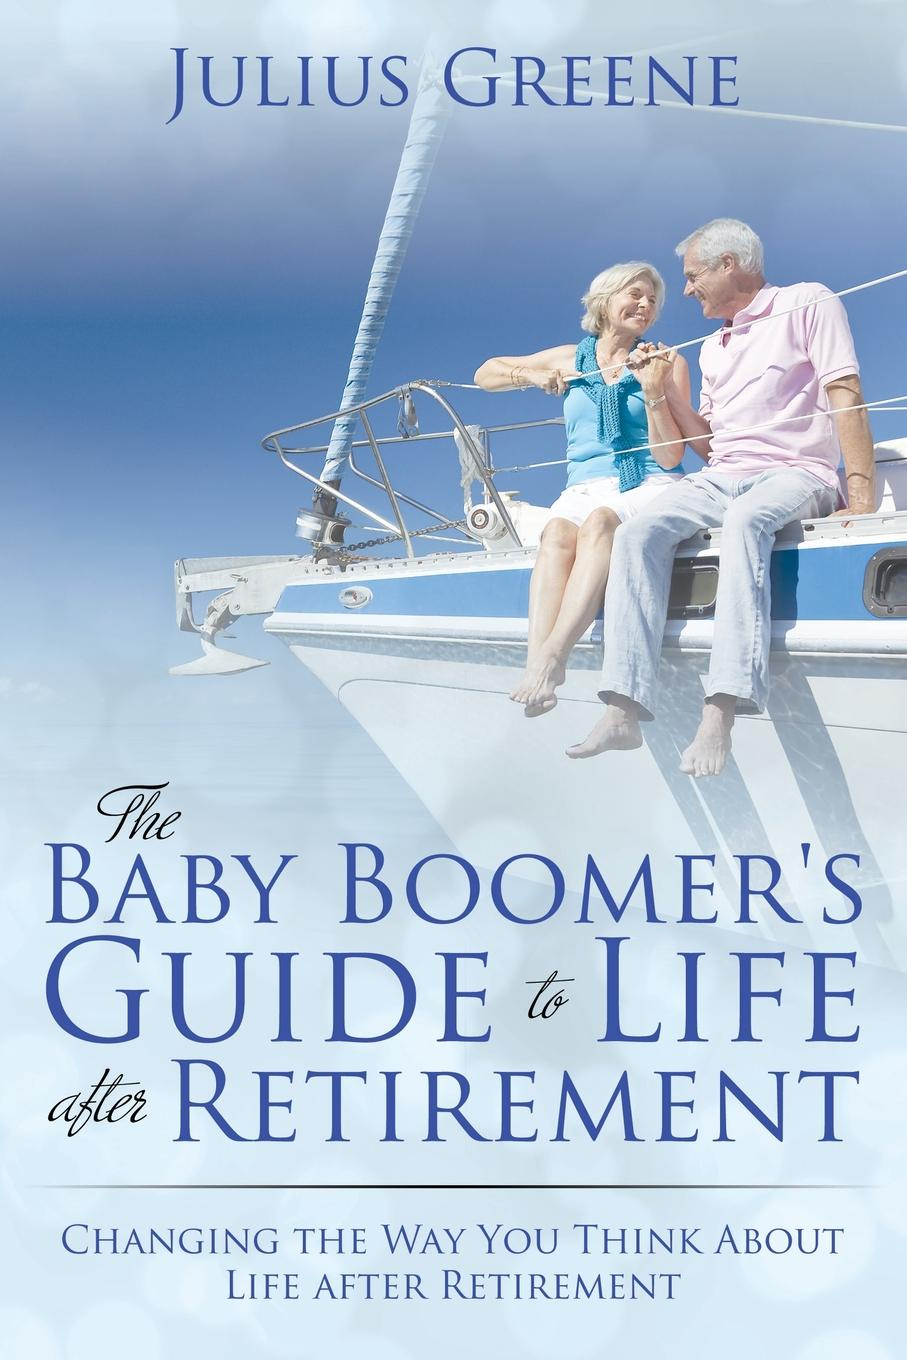 Julius Greene The Baby Boomer's Guide to Life after Retirement. Changing the Way You Think About Life after Retirement kaycee krysty wealth regeneration at retirement planning for a lifetime of leadership